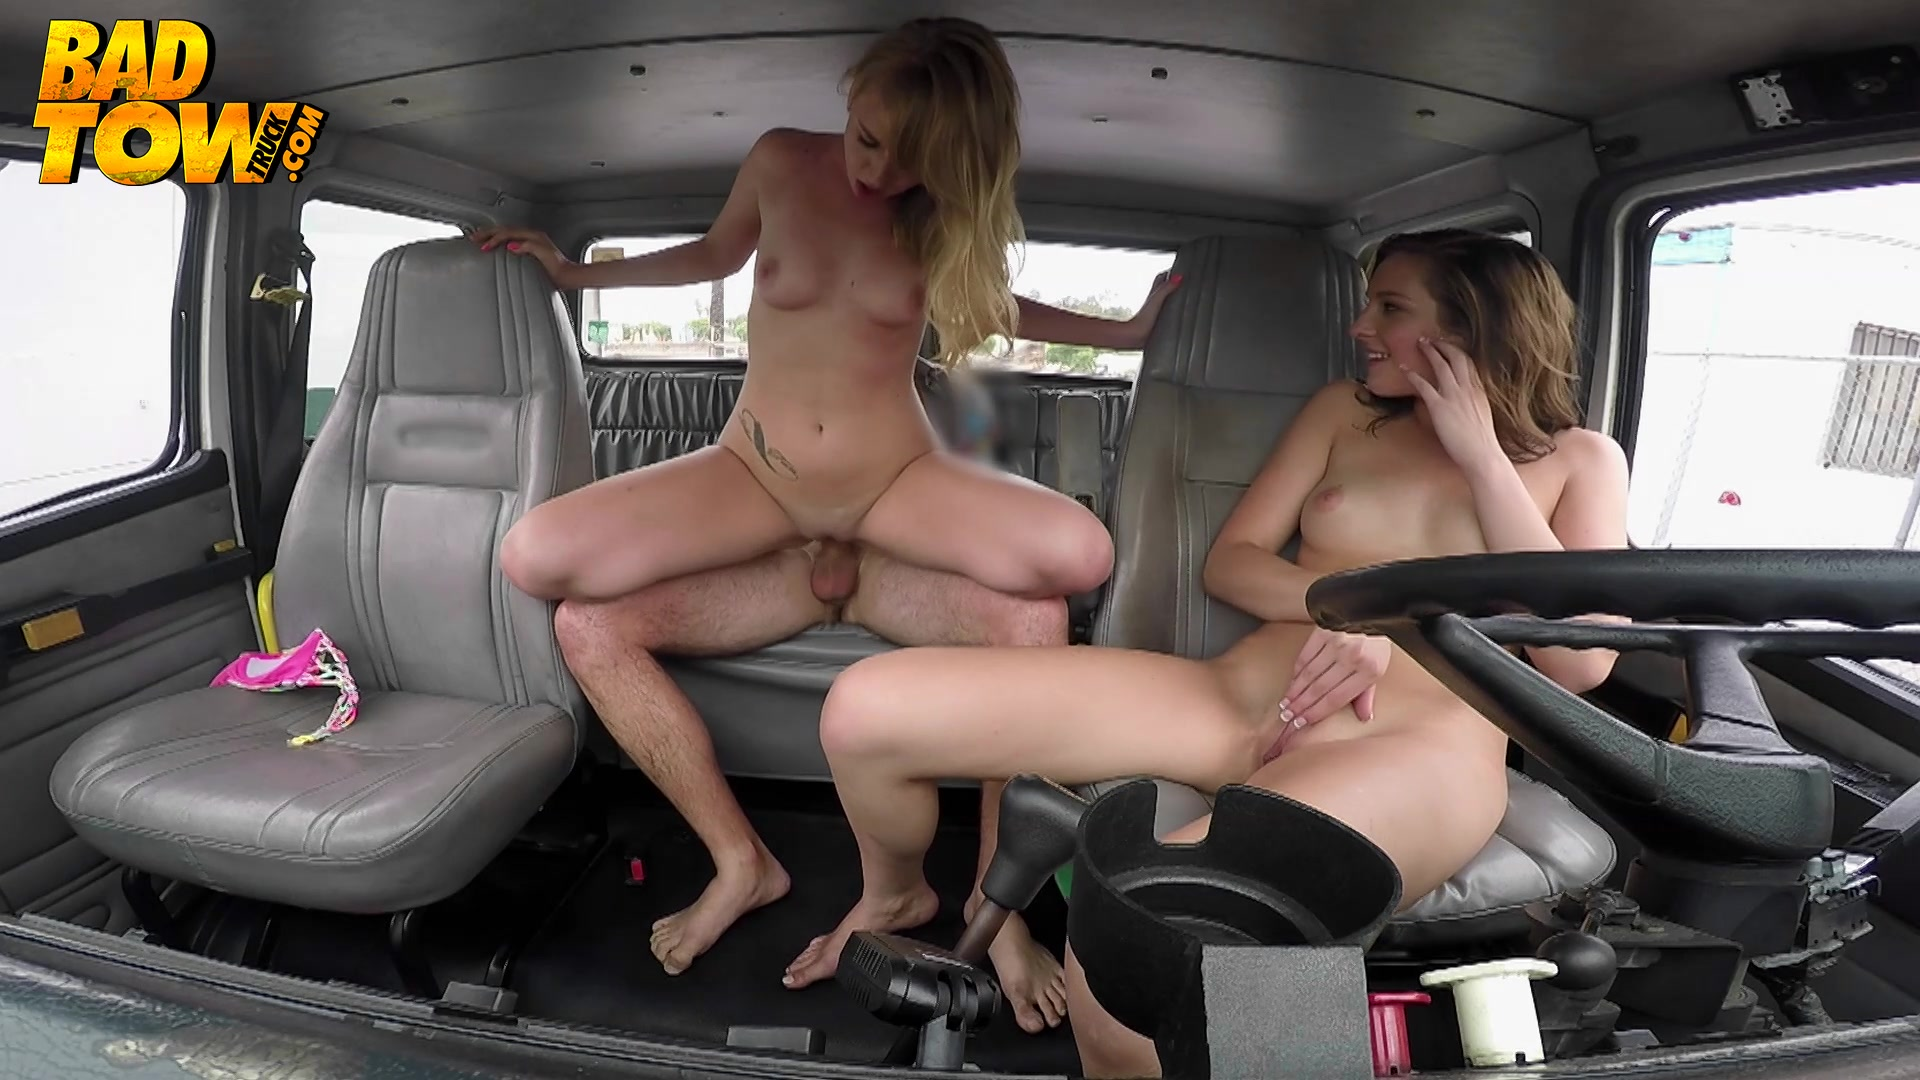 Bad tow truck porn